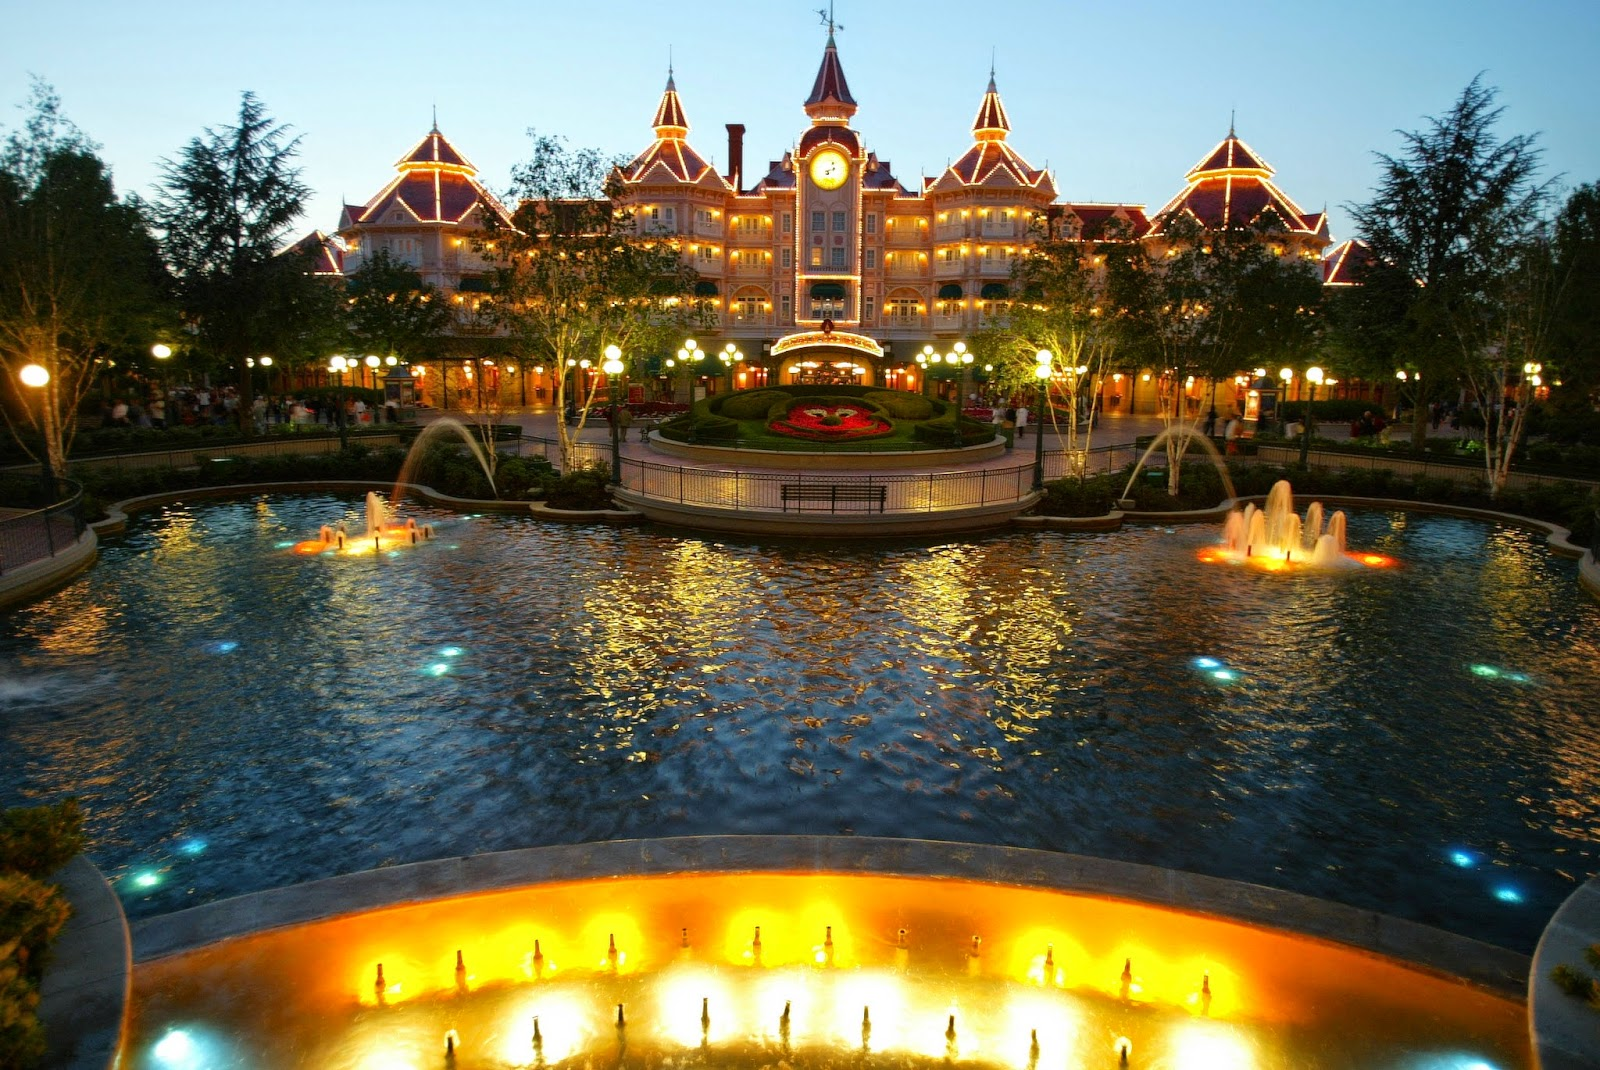 Tips to Get the Best From Your Disneyland Hotel